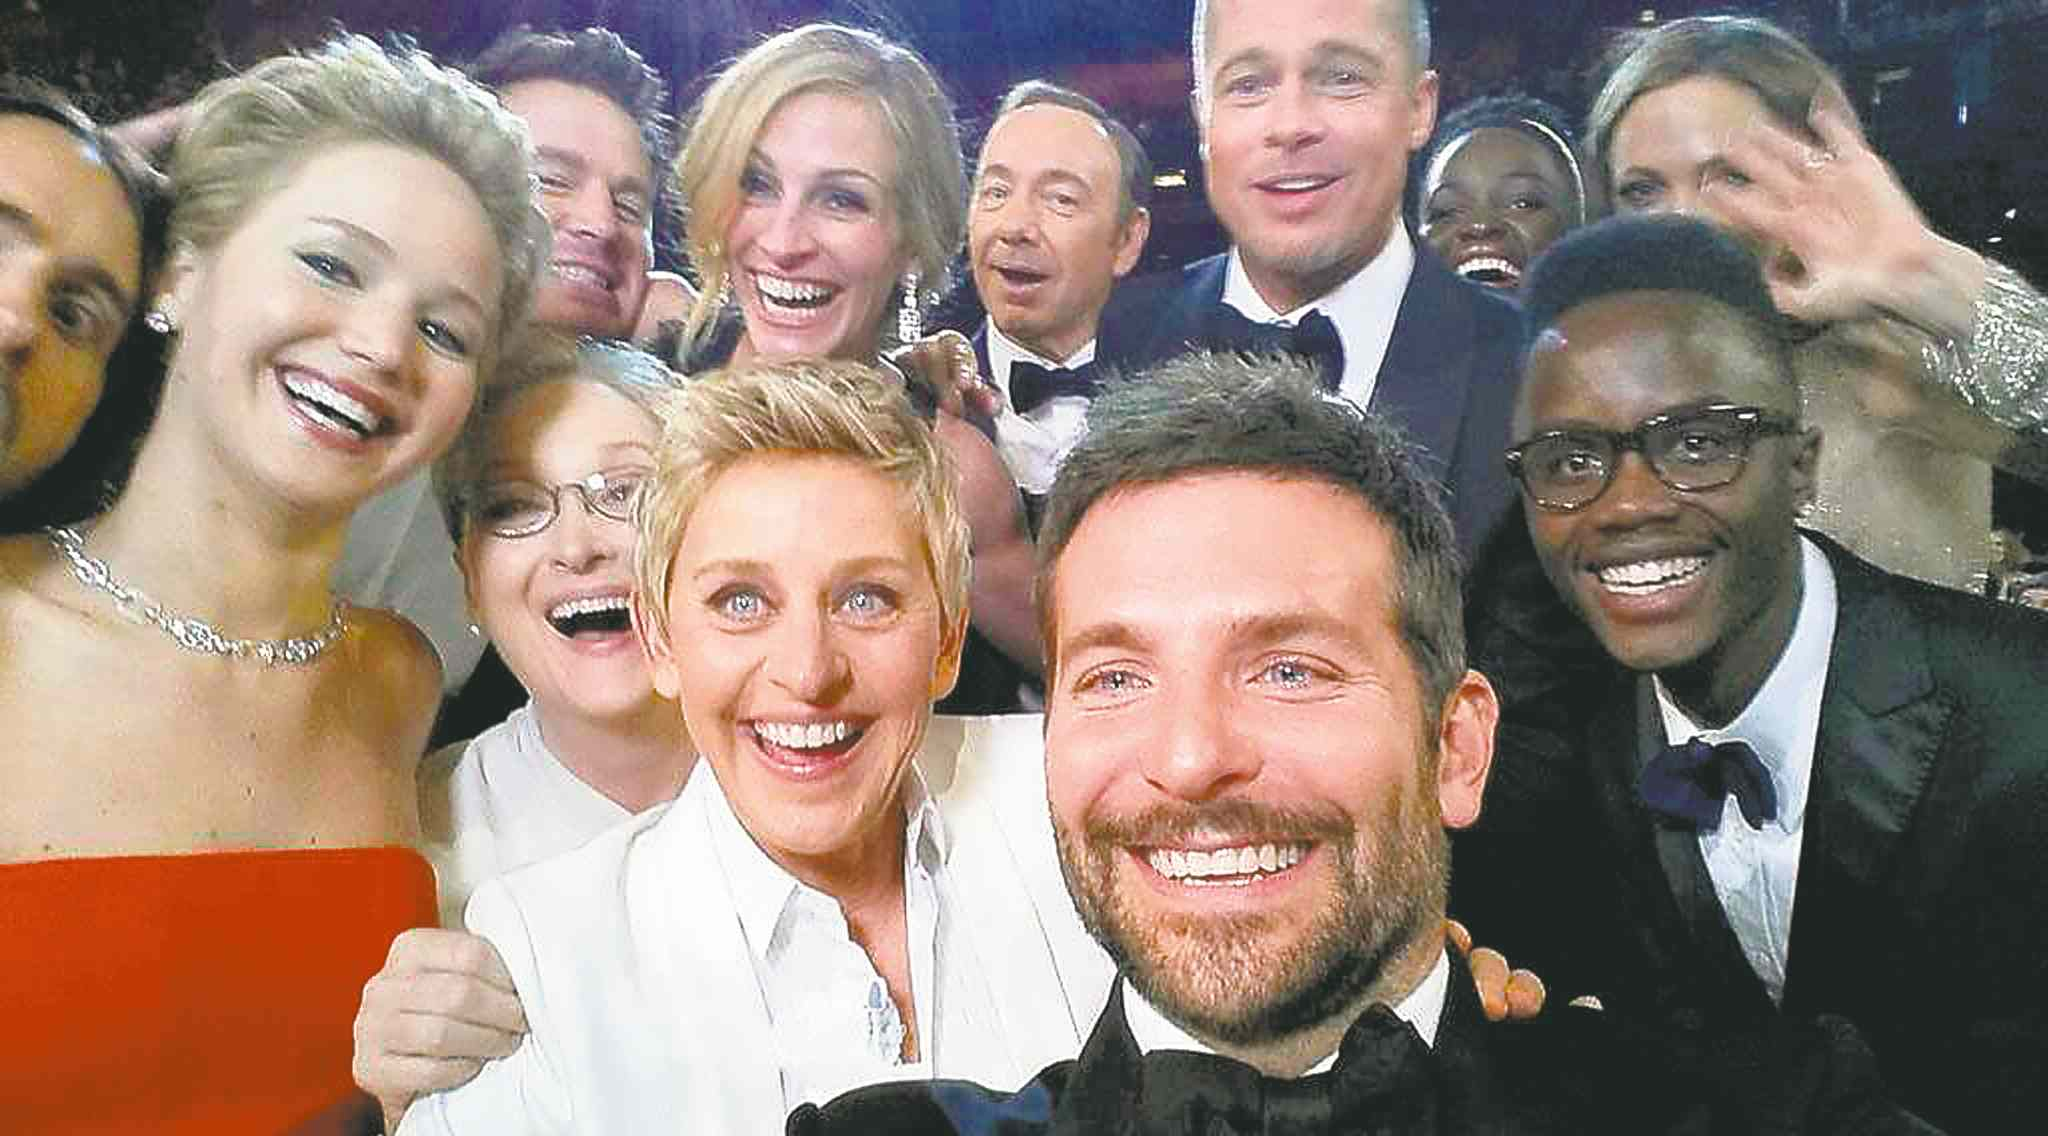 Front row from left, Jared Leto, Jennifer Lawrence, Meryl Streep, Ellen DeGeneres, Bradley Cooper, Peter Nyong'o Jr., and, second row, from left, Channing Tatum, Julia Roberts, Kevin Spacey, Brad Pitt, Lupita Nyong'o and Angelina Jolie.